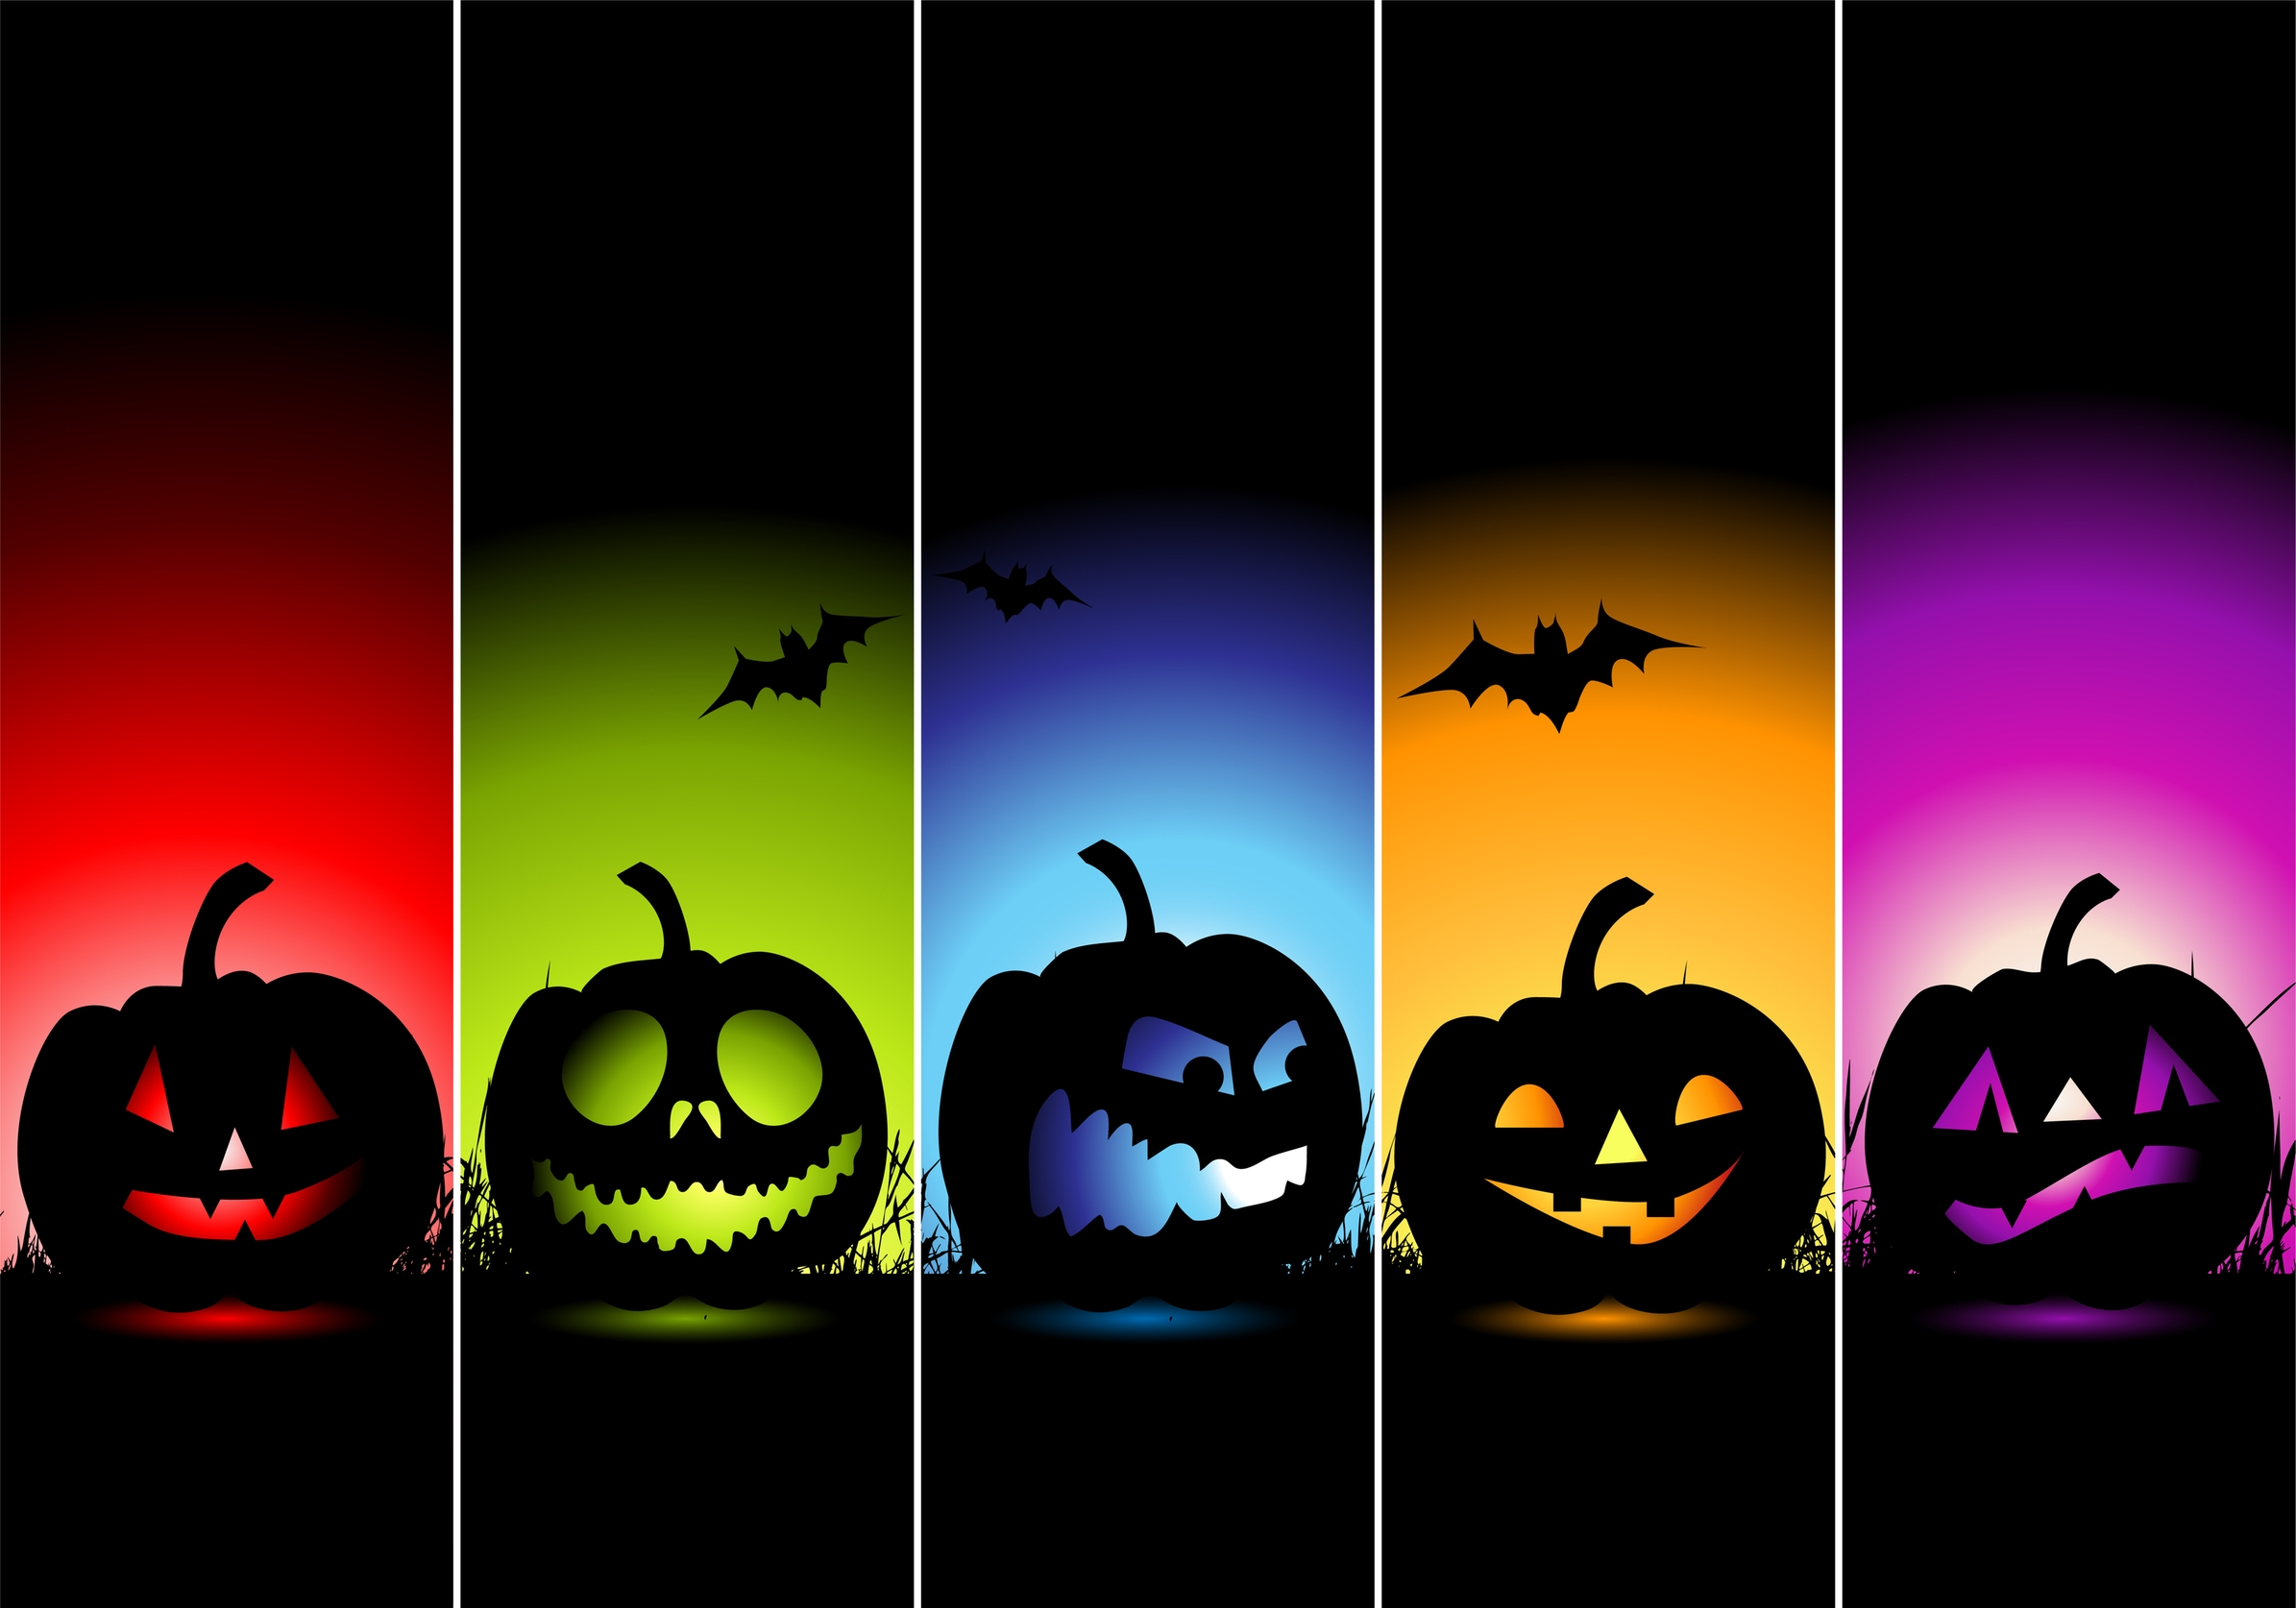 Colorful-Halloween-Horor-Wallpaper